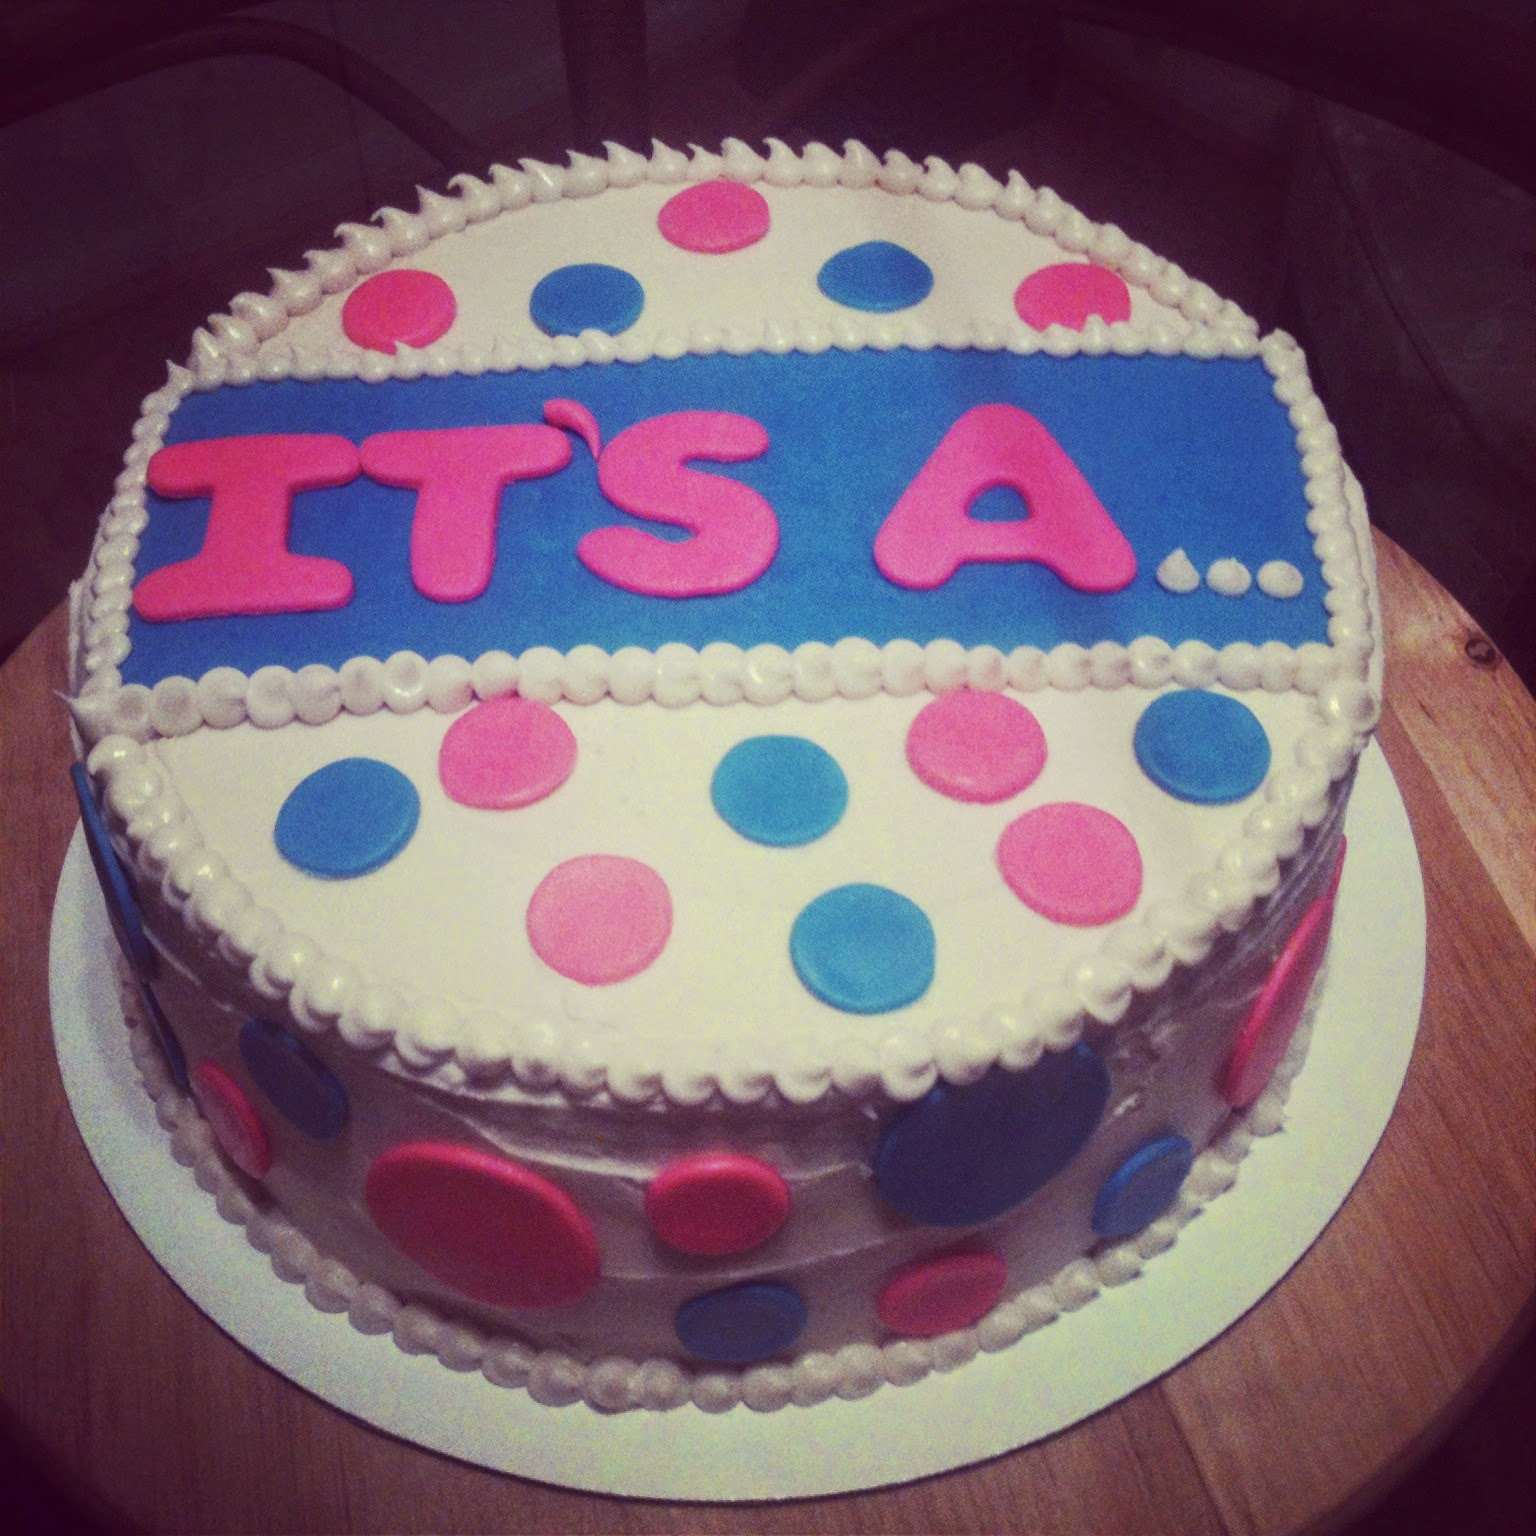 Mandy's cakes: Gender Reveal Cake